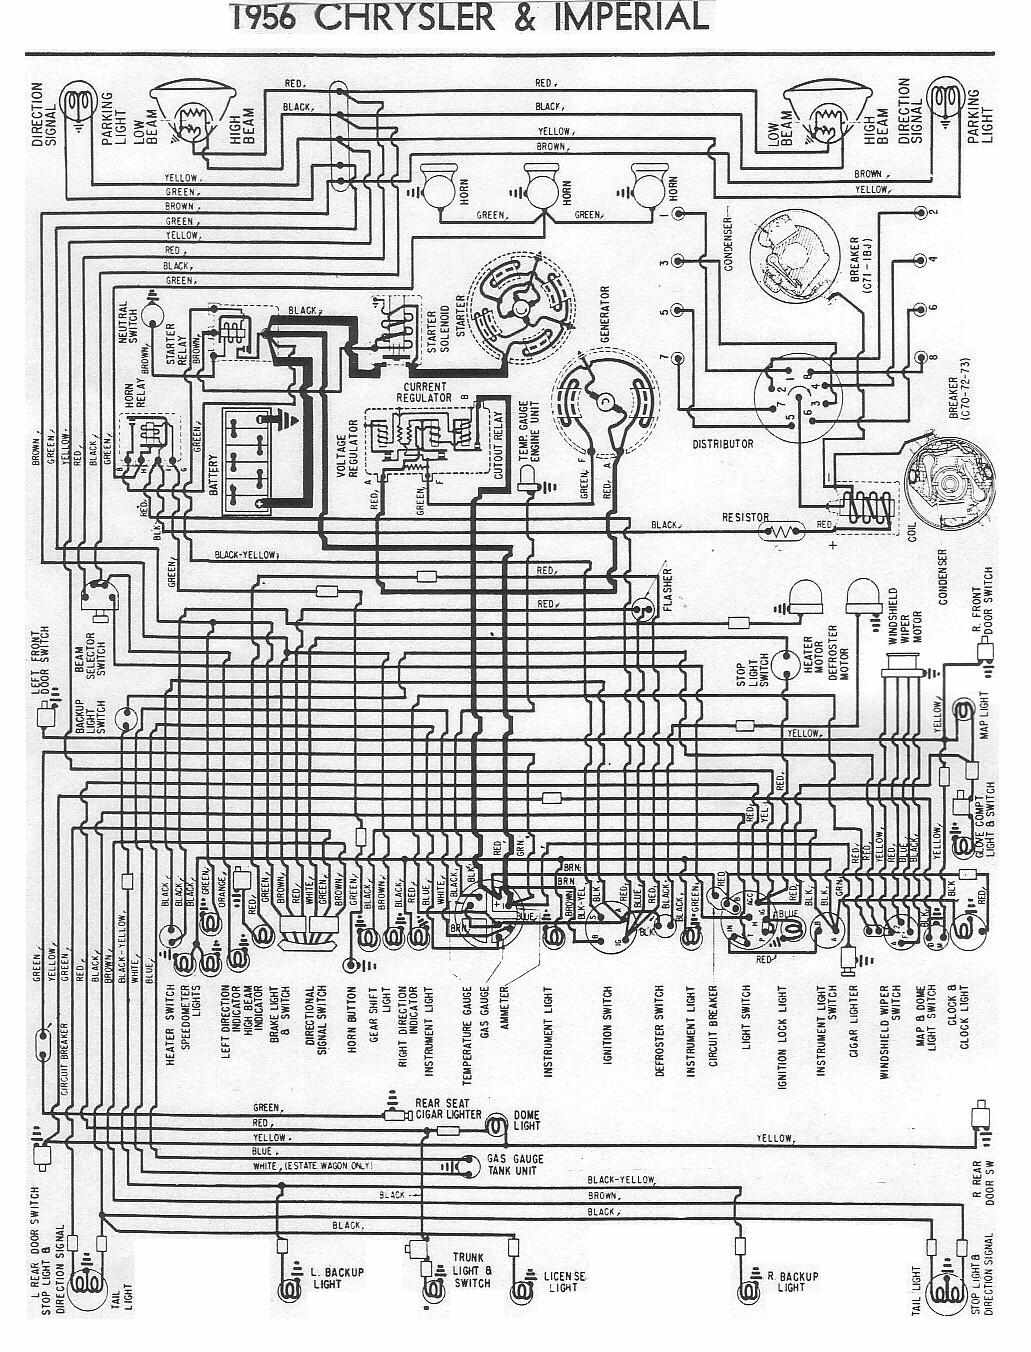 1955 Chrysler Imperial Wiring Diagram Trusted 1968 Dodge Charger Harness Gallery 1954 Mopar Diagrams Library Rh Svpack Co 1953